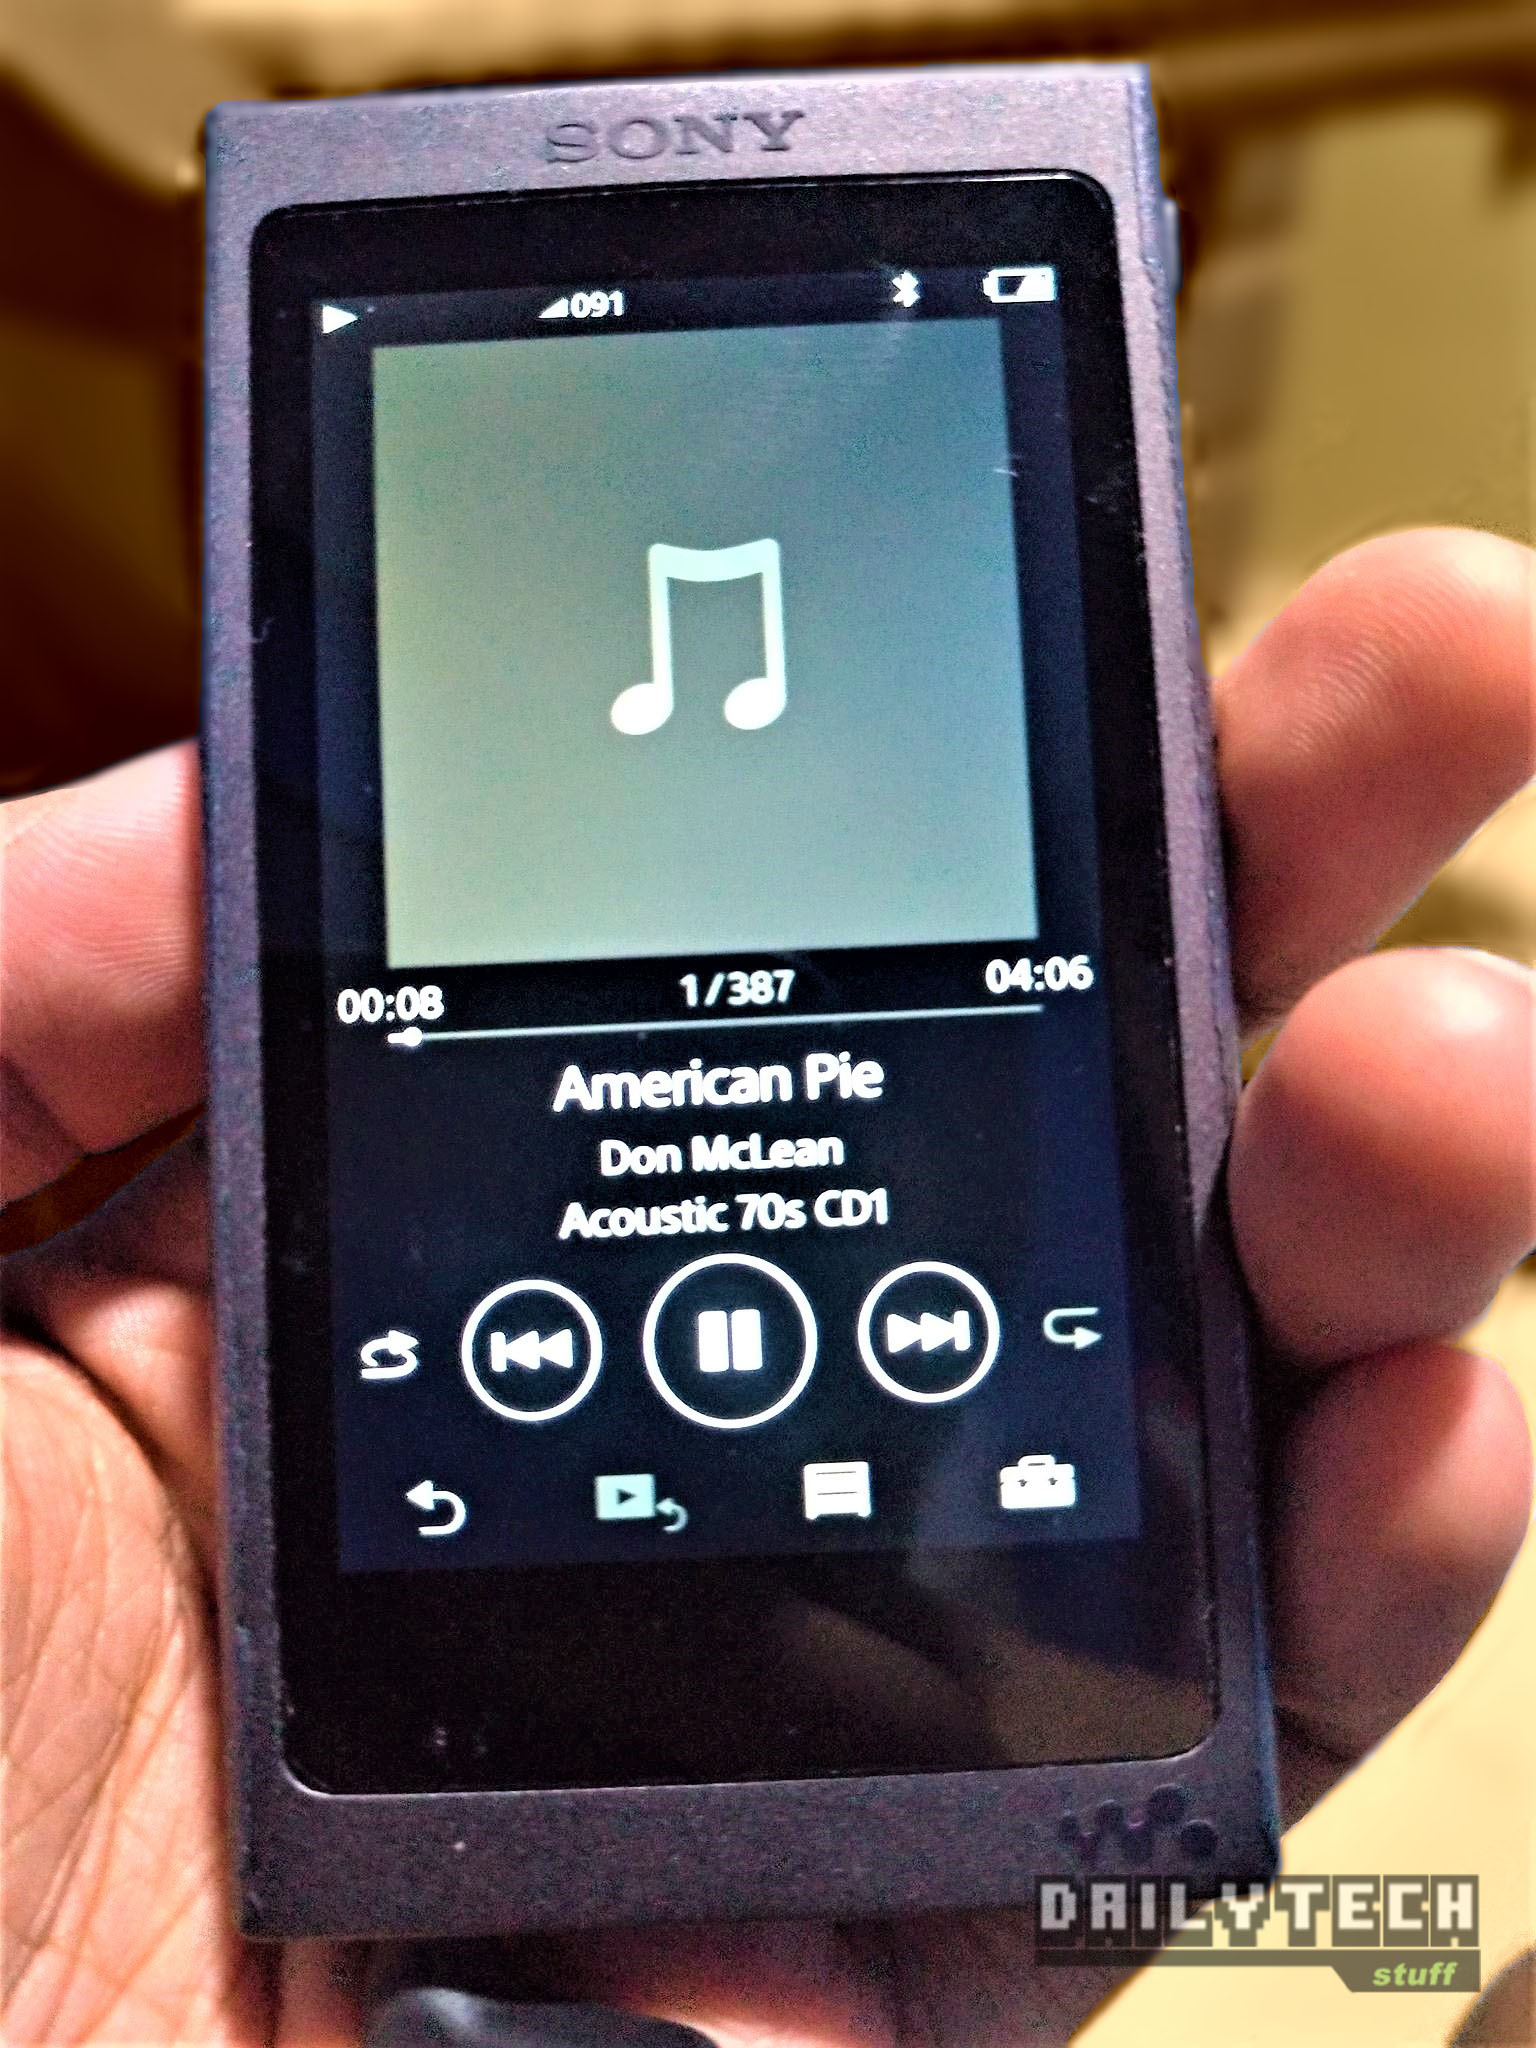 Sony flac player